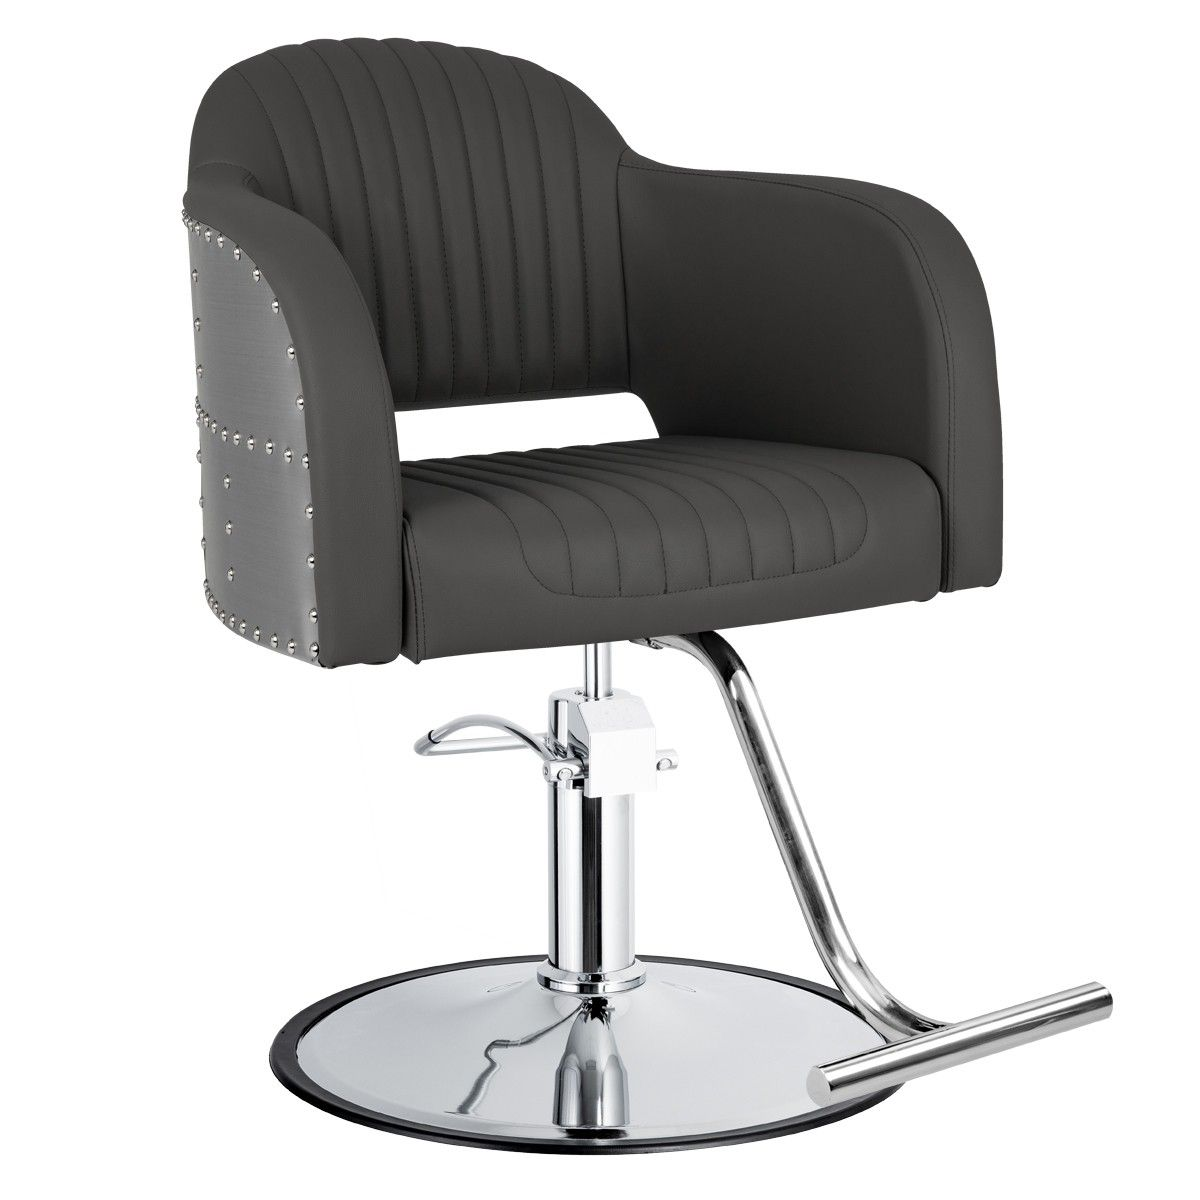 Pleasant Corsair Styling Chair In Gray Styling Chairs In 2019 Gmtry Best Dining Table And Chair Ideas Images Gmtryco